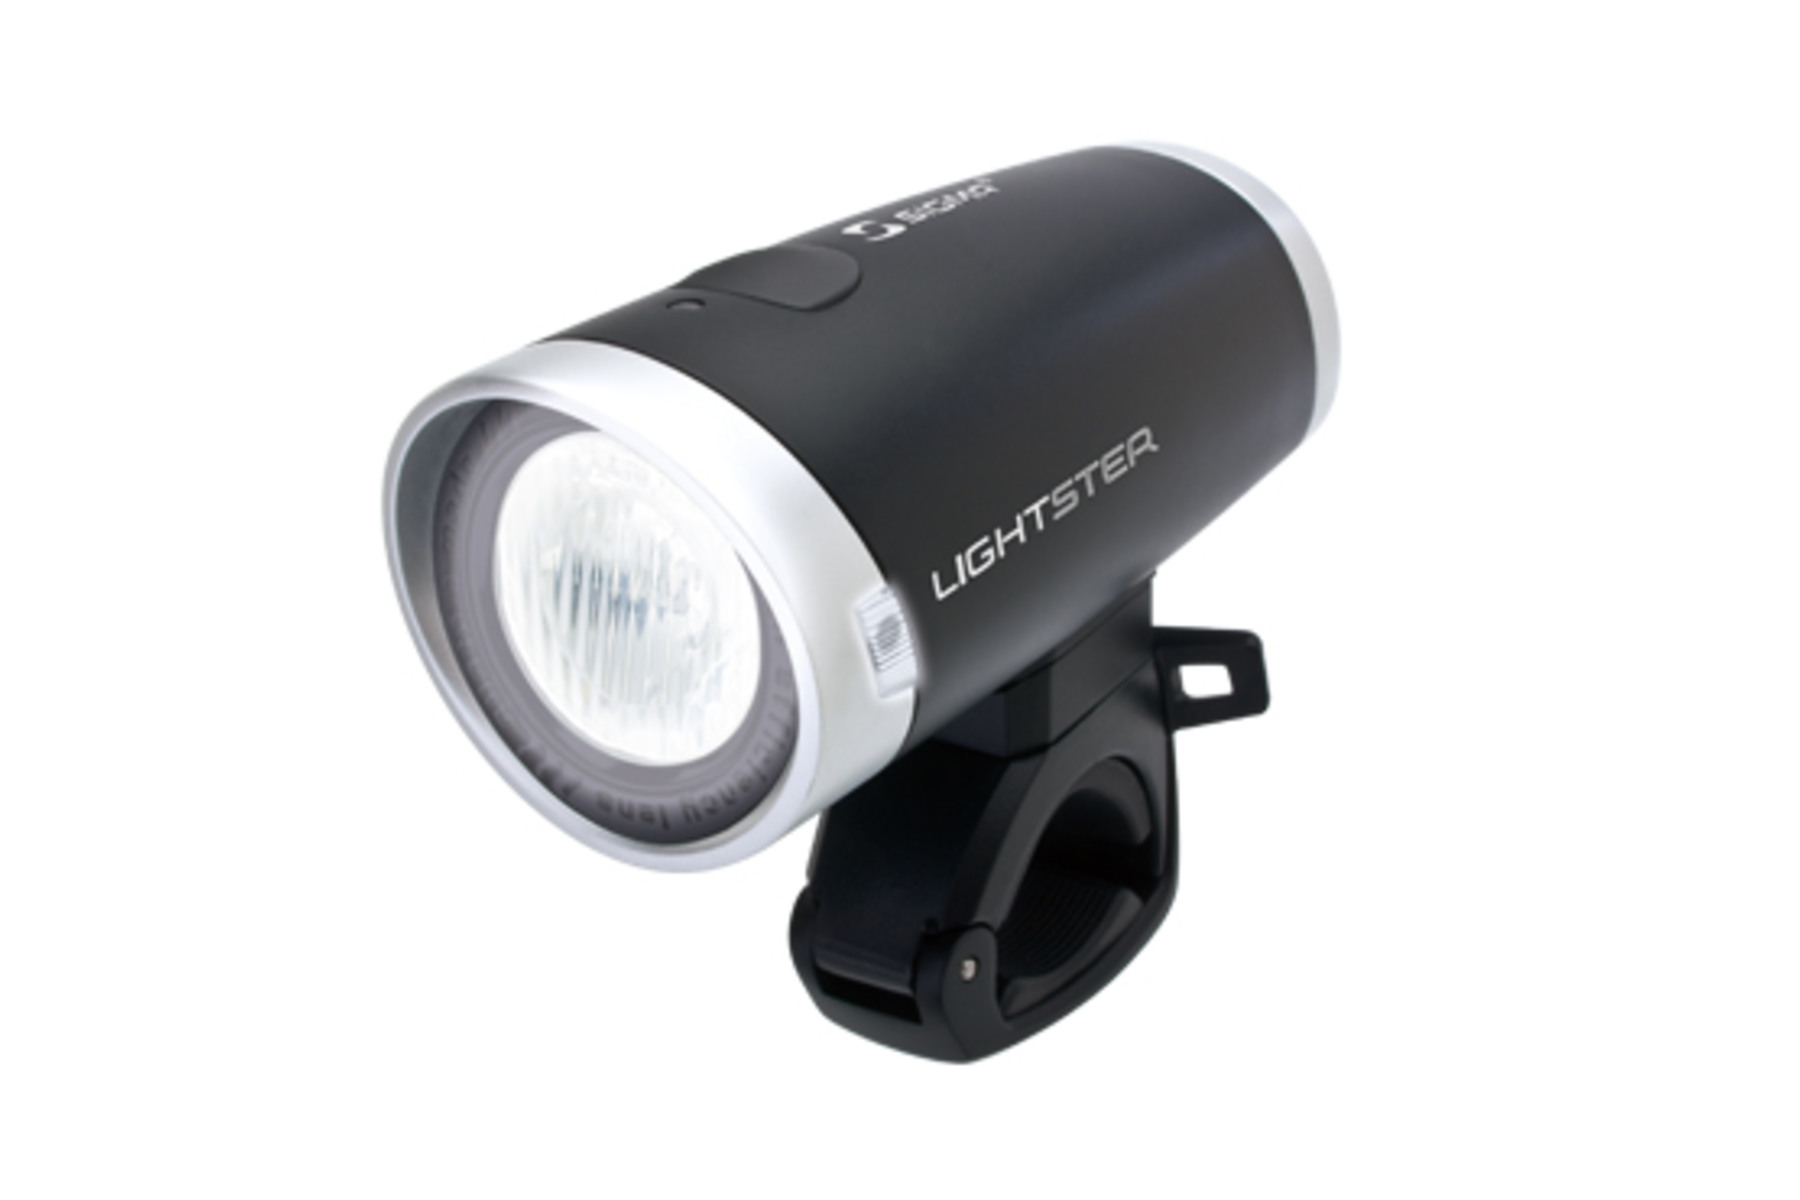 Sigma SIGMA LIGHTSTER led-koplamp kopen | ROSE Bikes